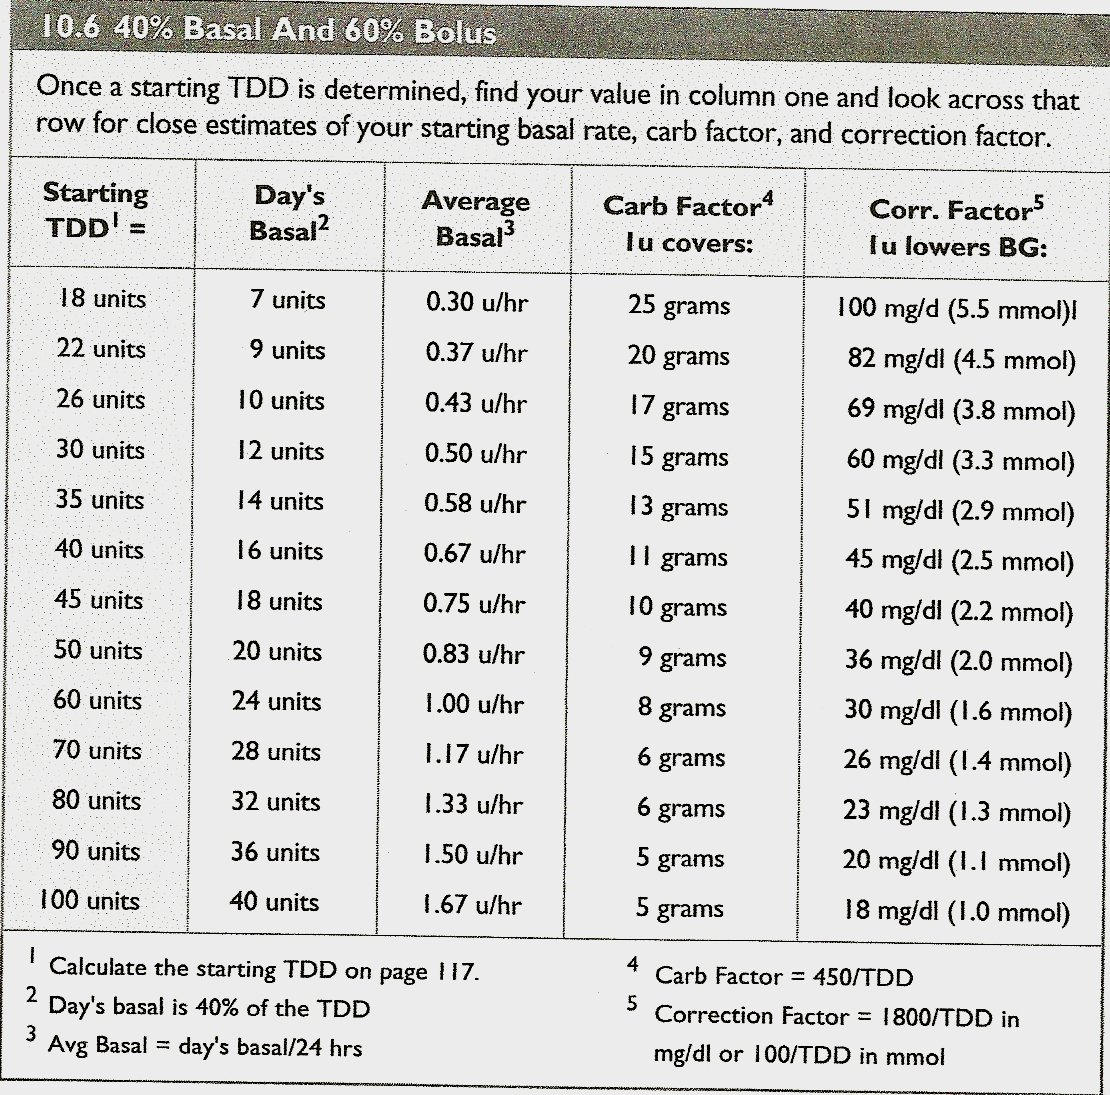 28 Day Expiration Chart Insulin – Samyysandra 28 Day Medication Expiration Date Chart